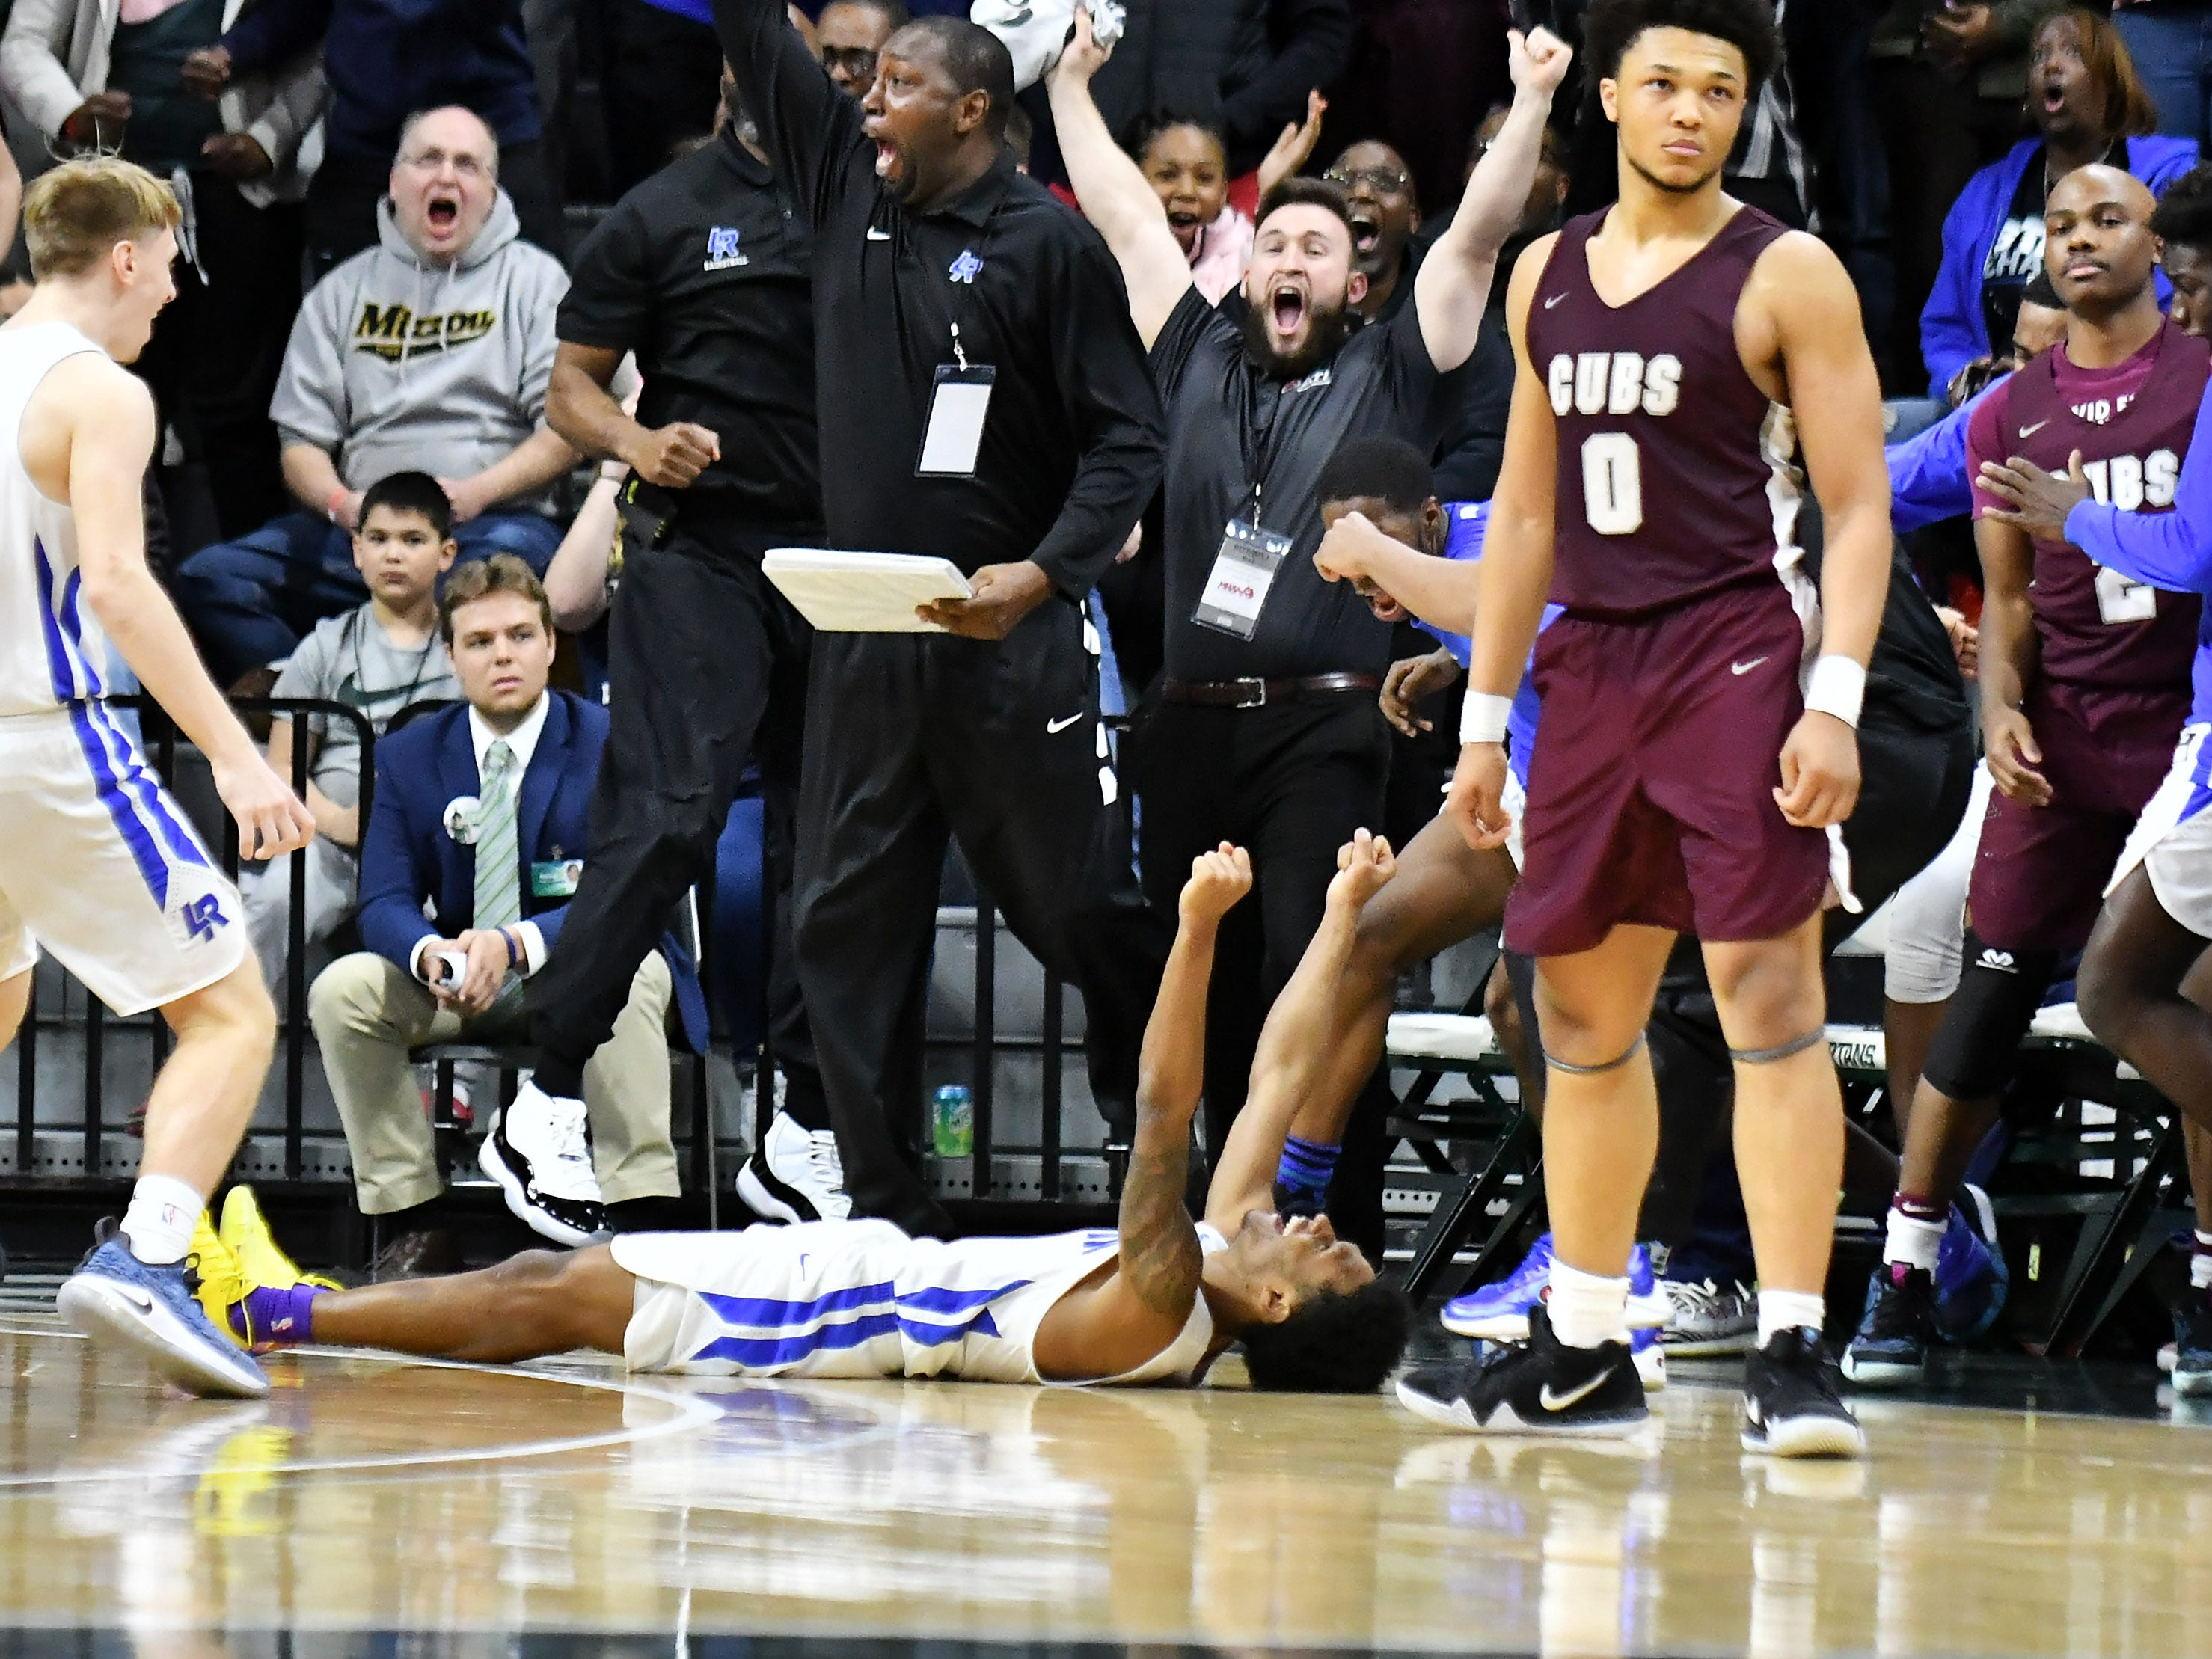 Ypsilanti Lincoln guard Jalen Fisher (14), laying on the floor, reacts after hitting the winning shot at the buzzer in a 64-62 victory over U-D Jesuit in the Division 1 final Saturday, March 16, 2019, at Breslin Center in East Lansing.